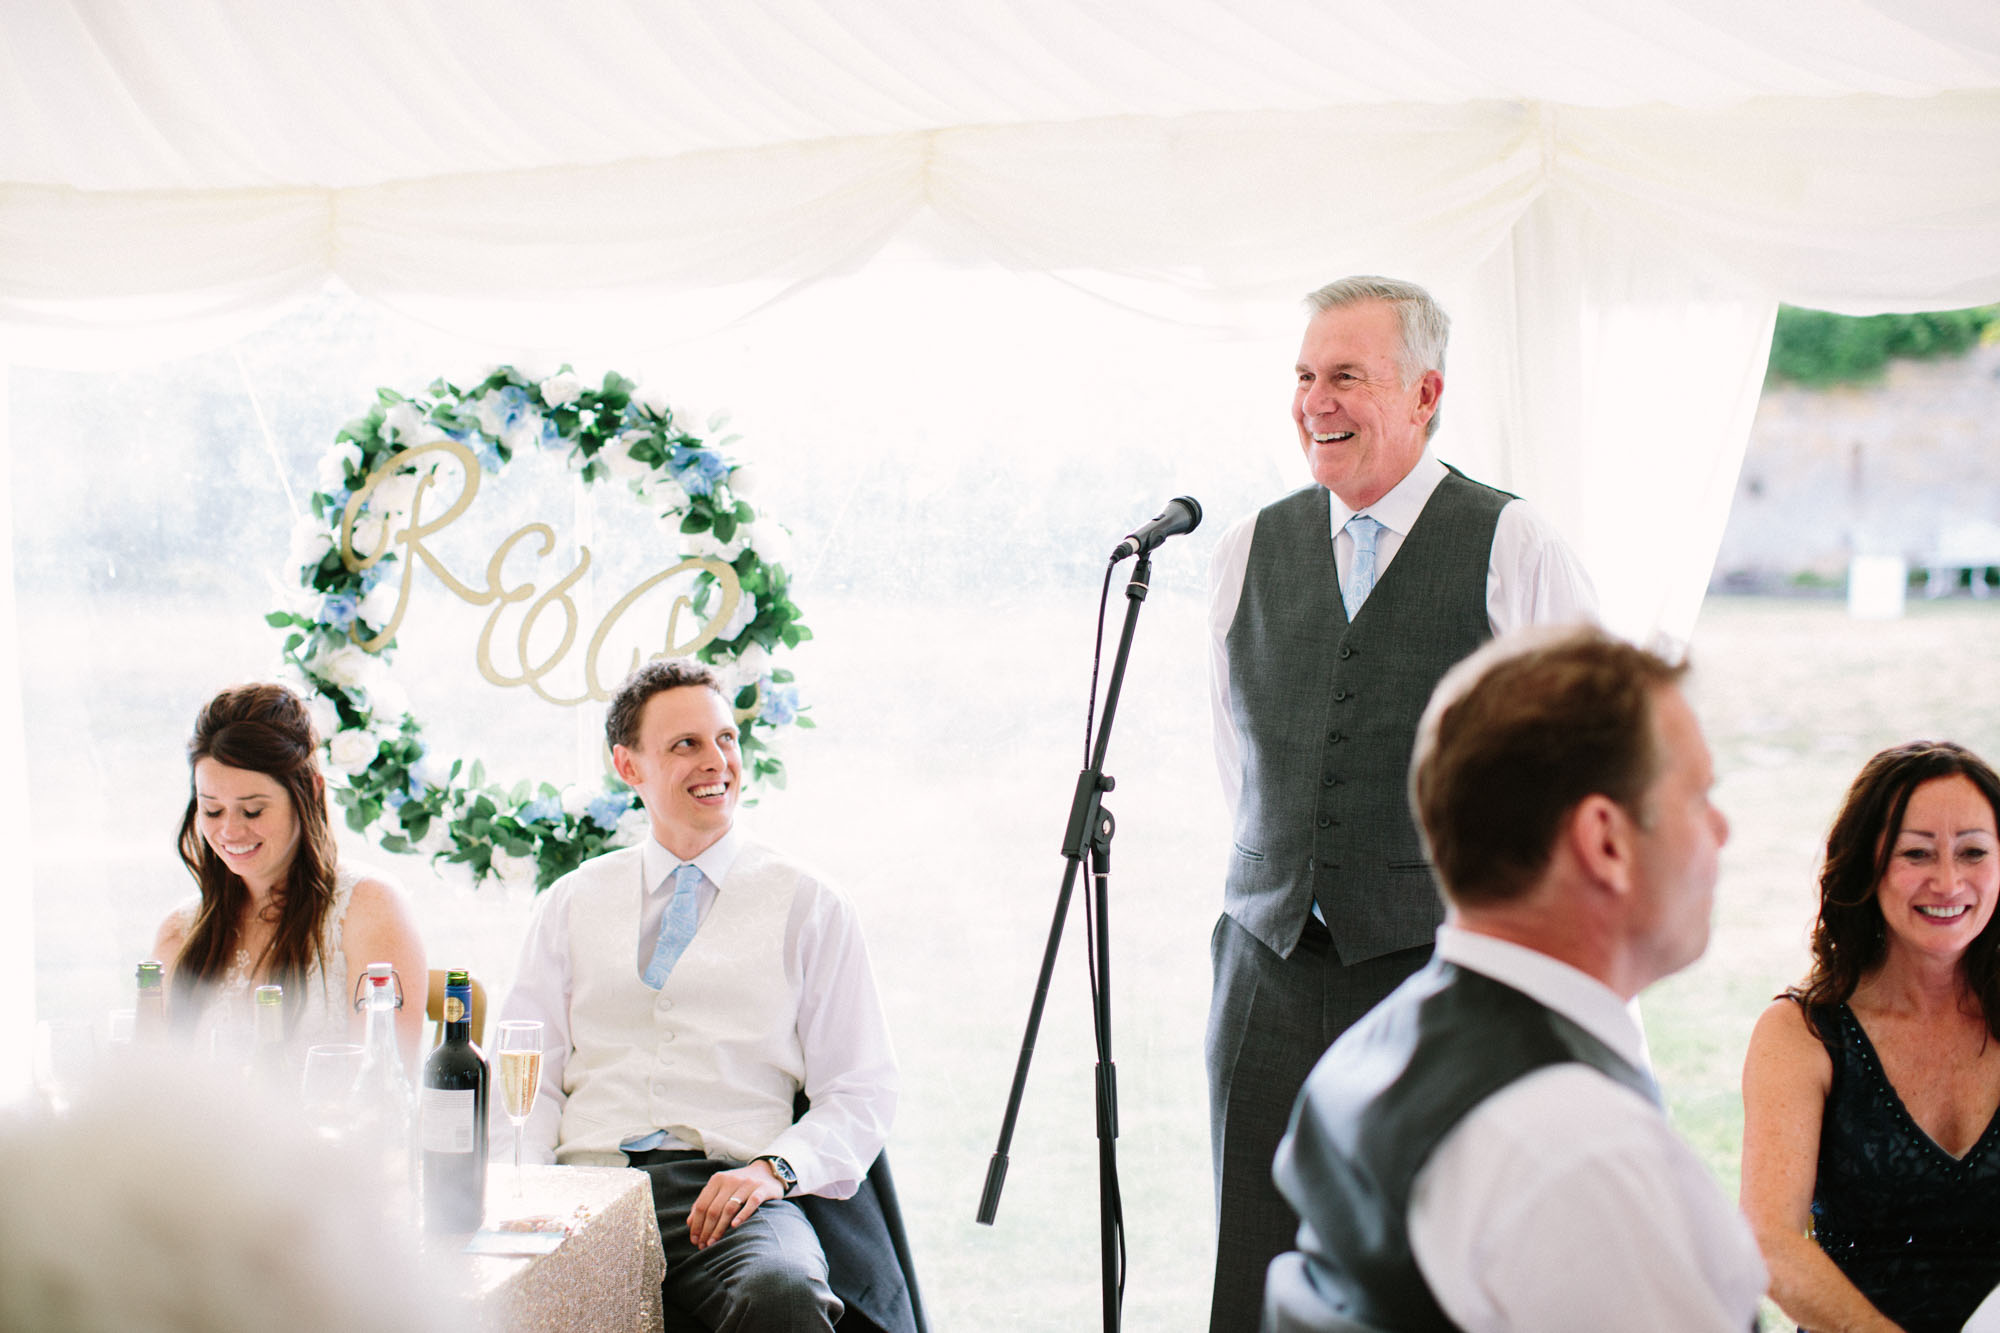 Father of the bride giving speech and bride and groom laughing